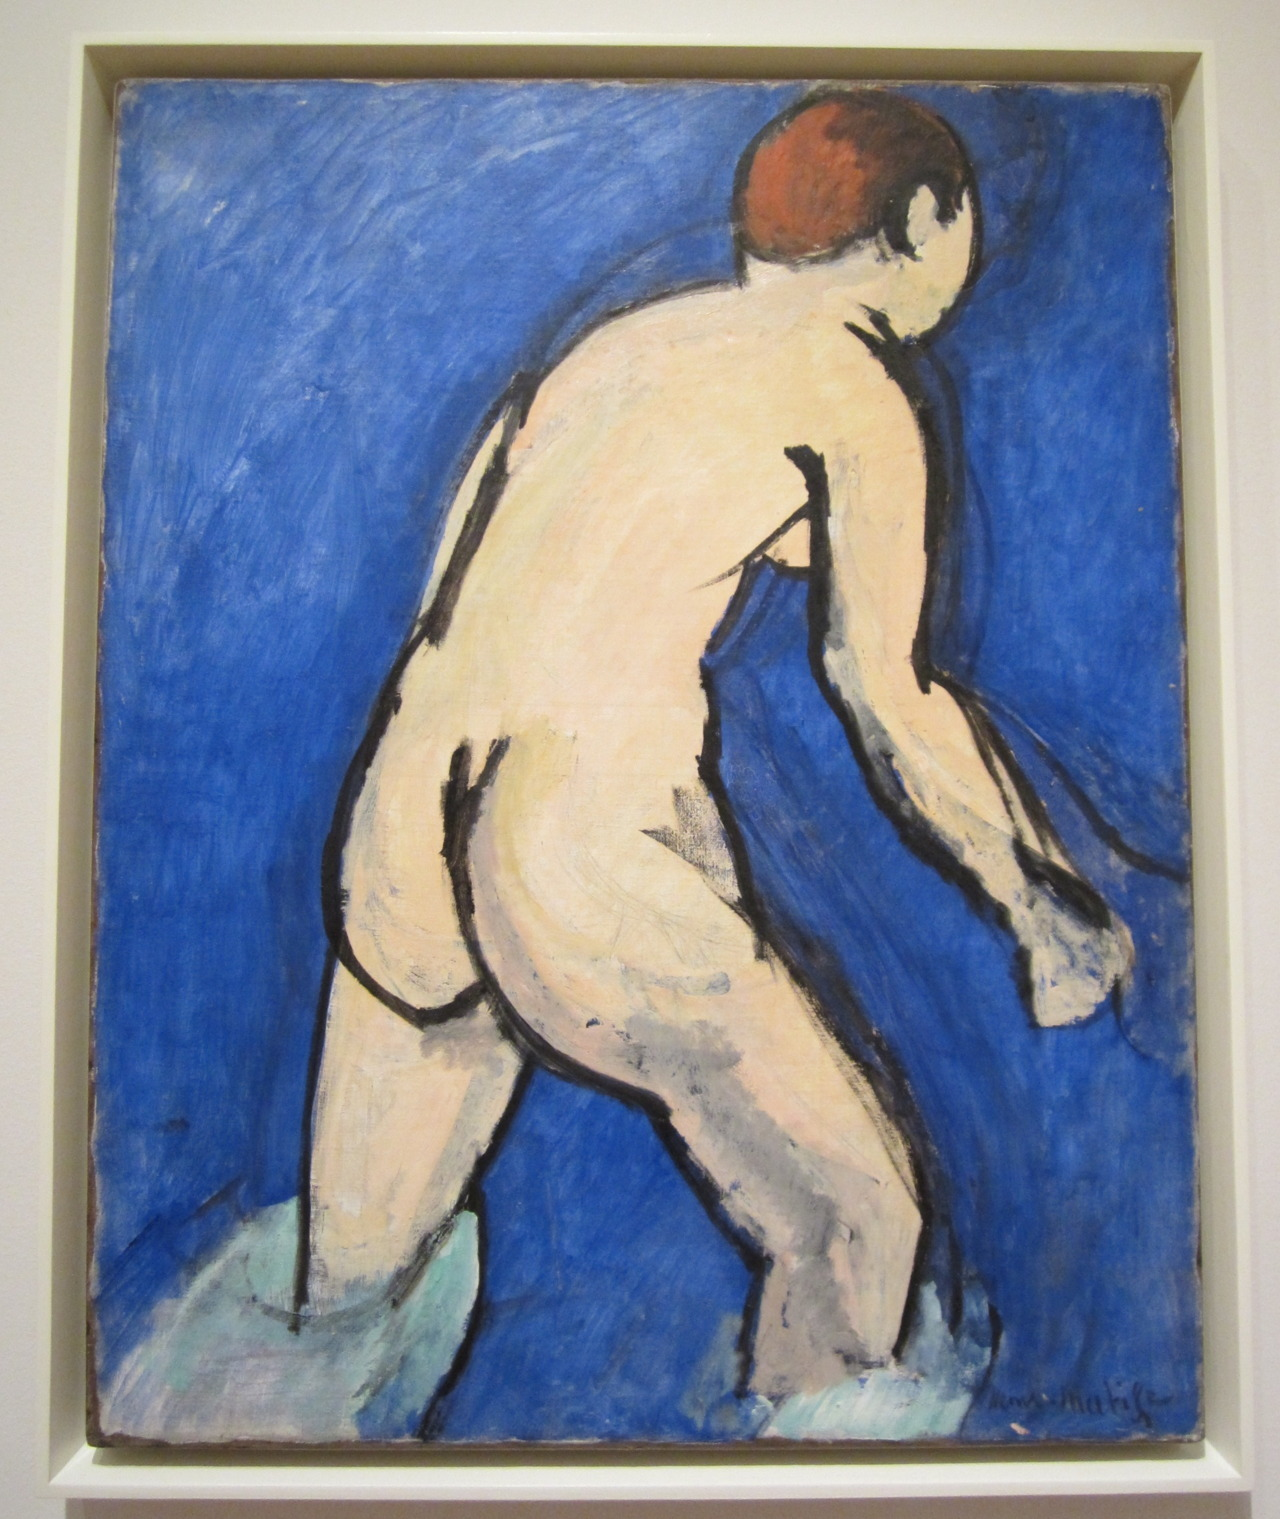 Bather - Henri Matisse 1909 MoMA, NYC